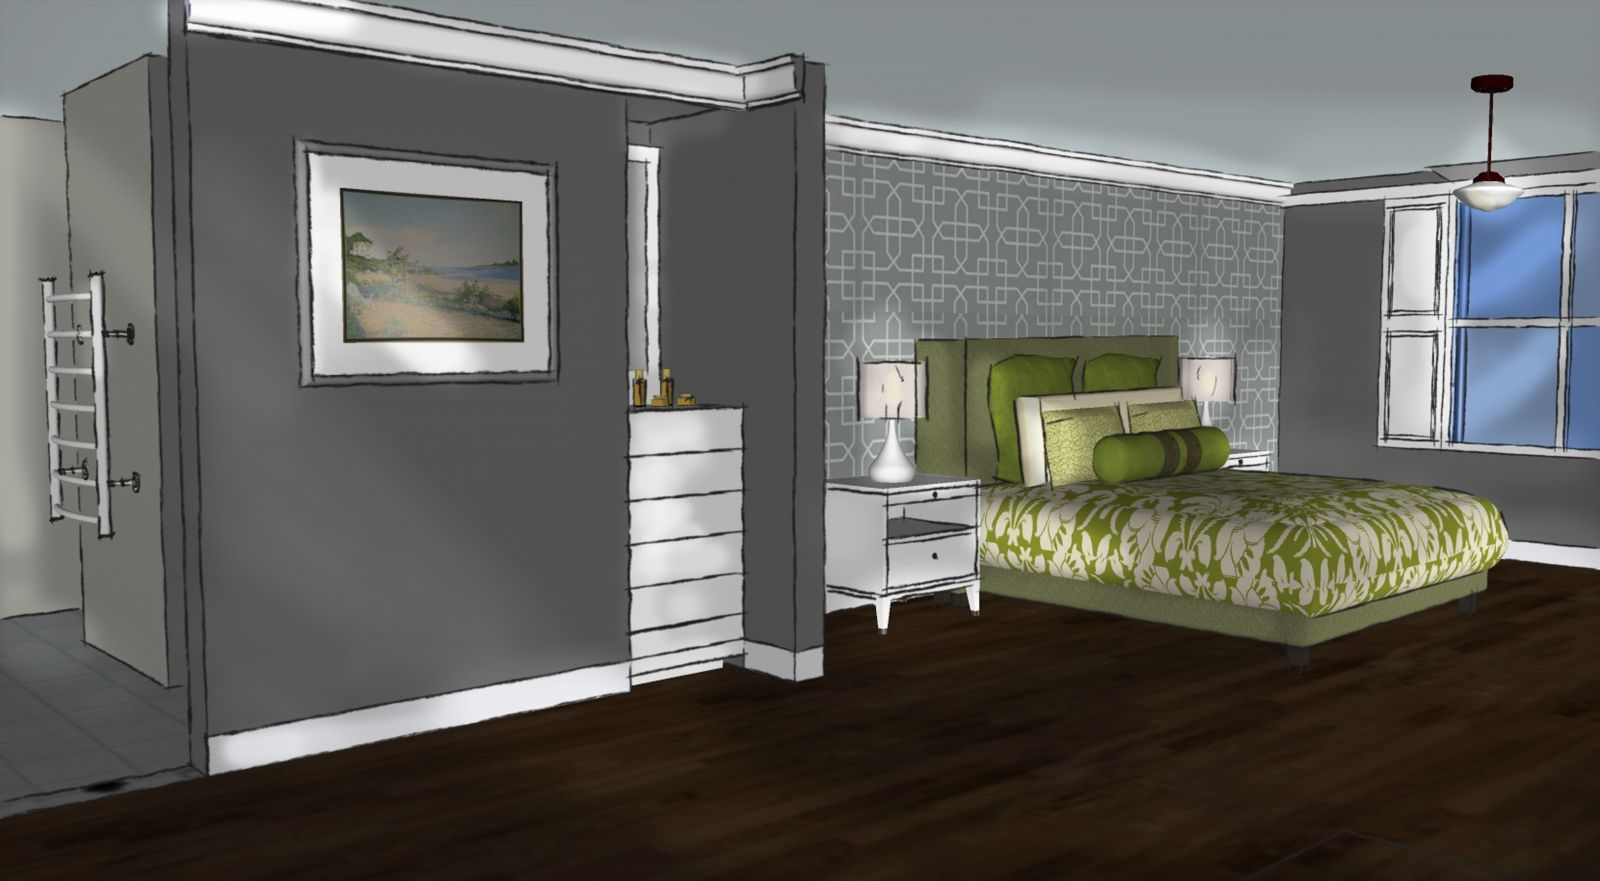 Bedroom dressing room ensuite ideas google search for Bedroom ensuite ideas